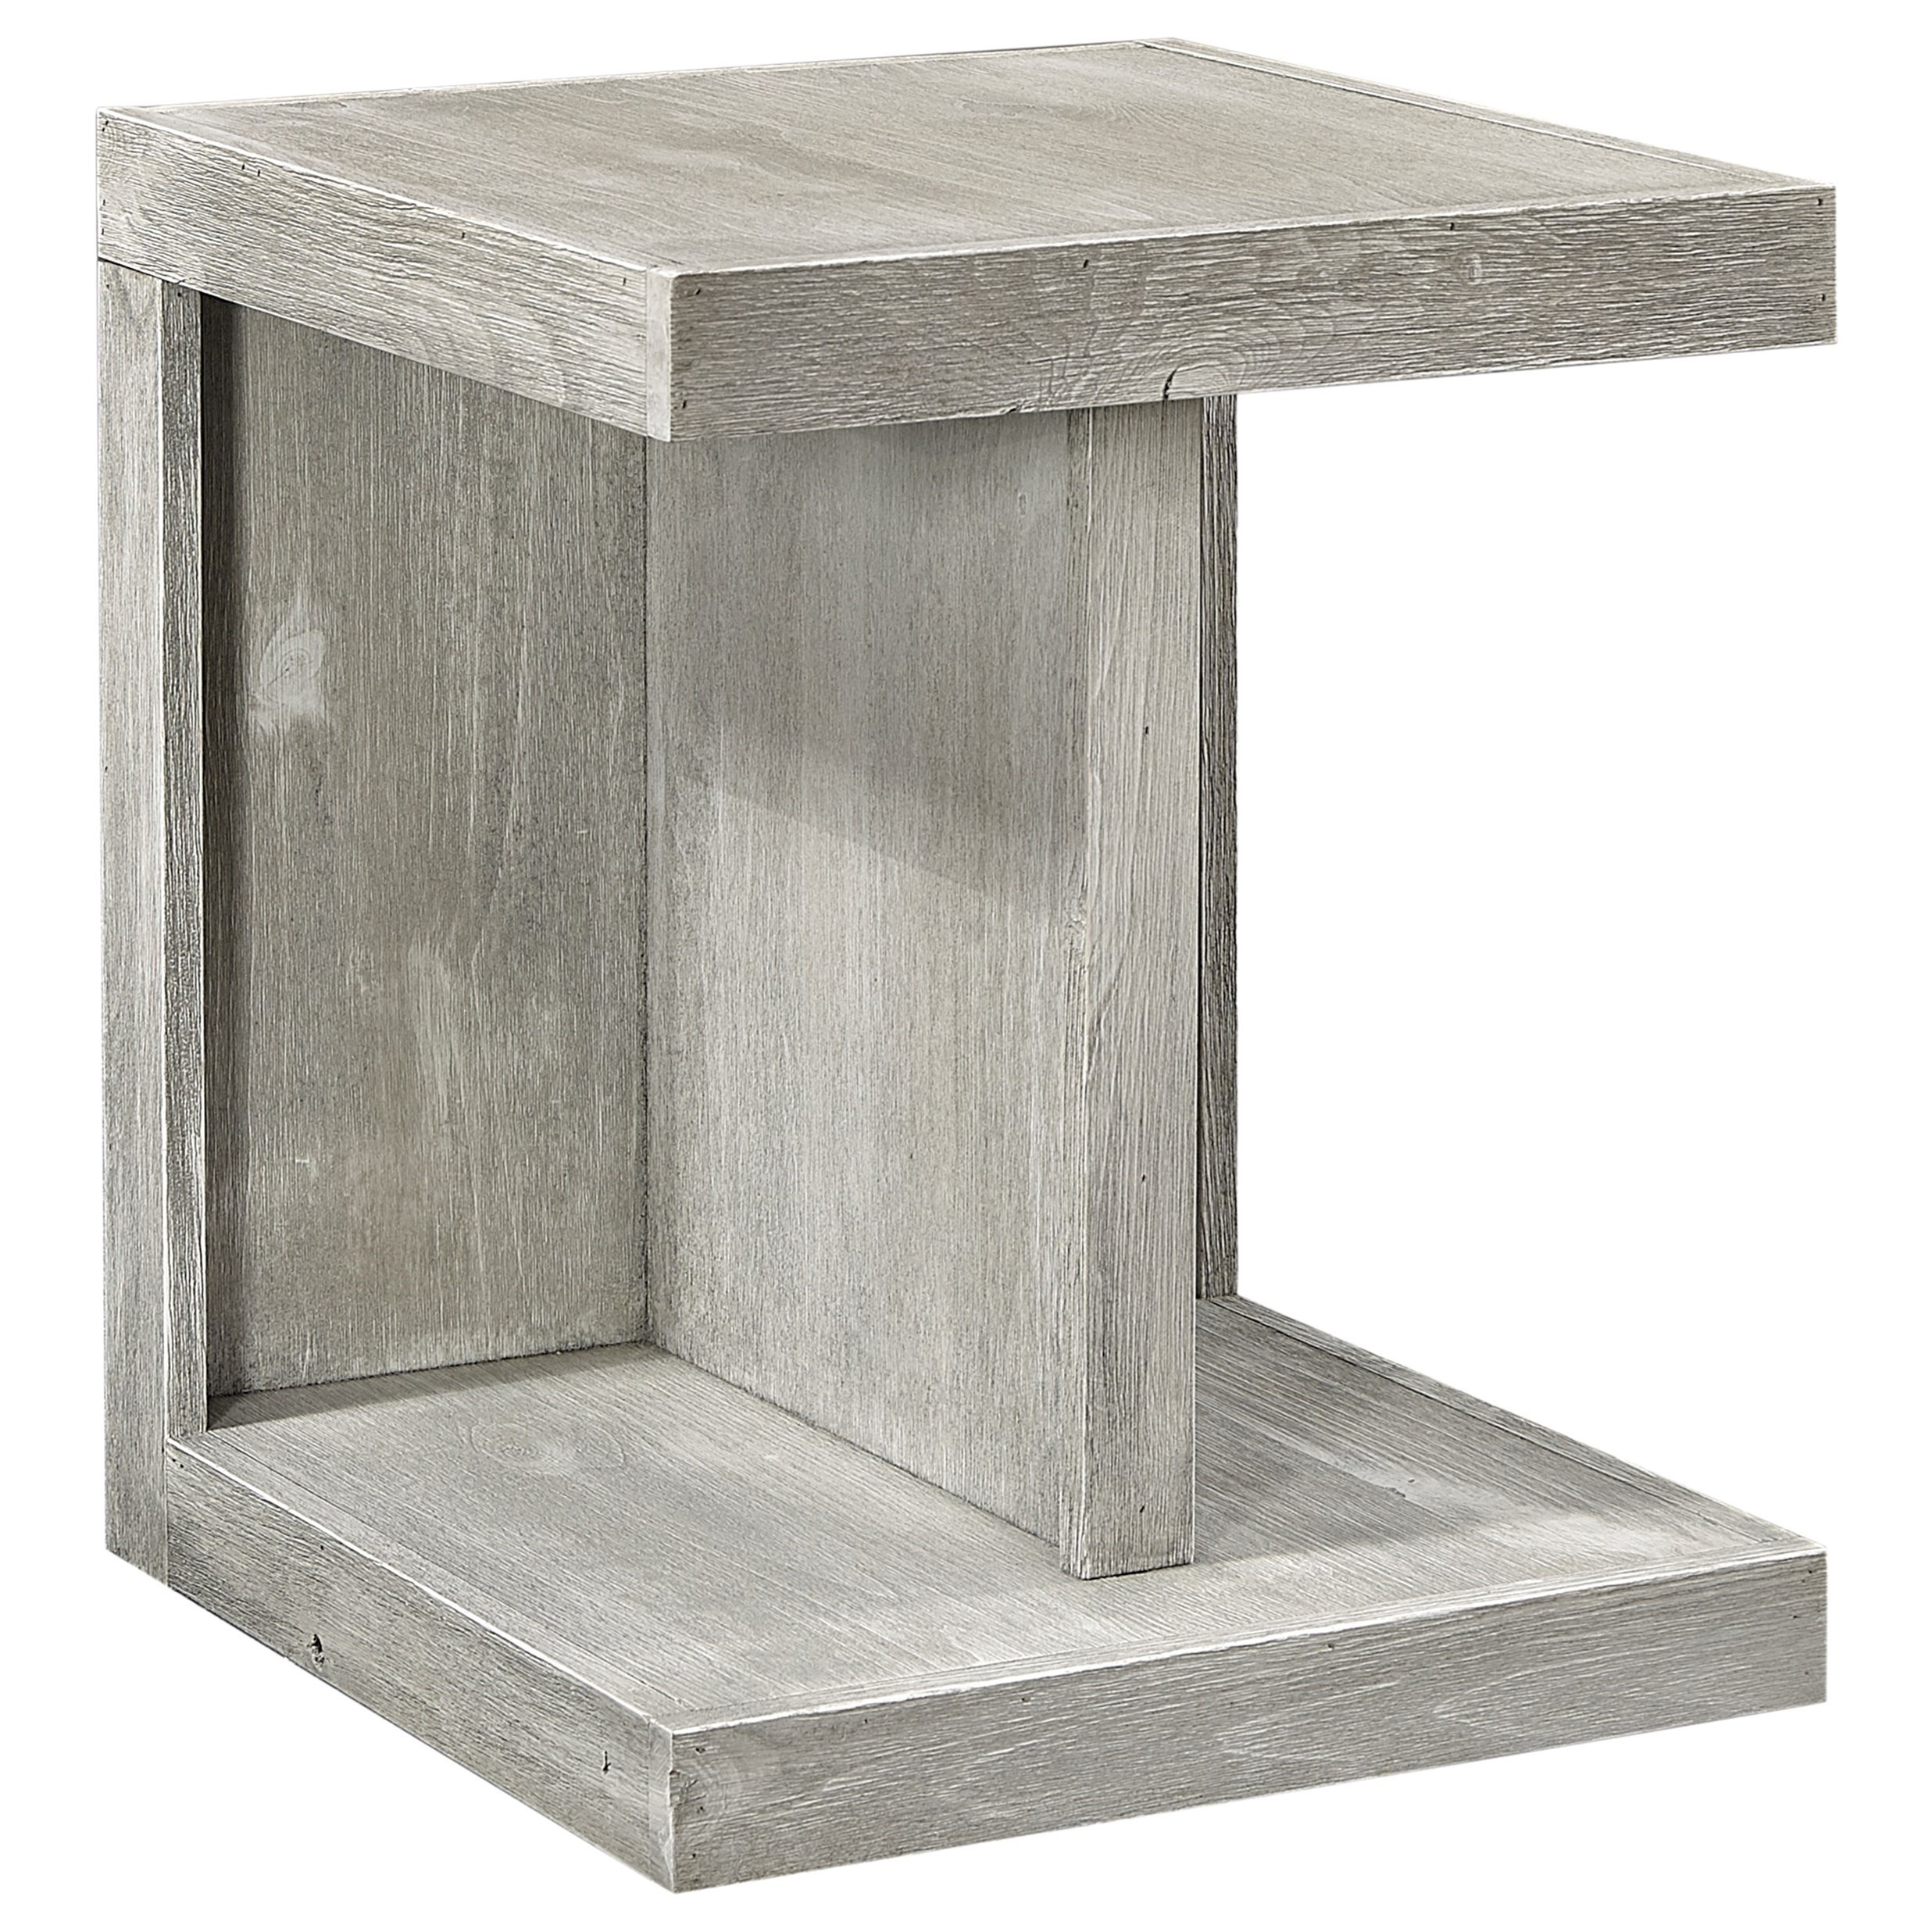 Aster Aster End Table by Aspenhome at Morris Home